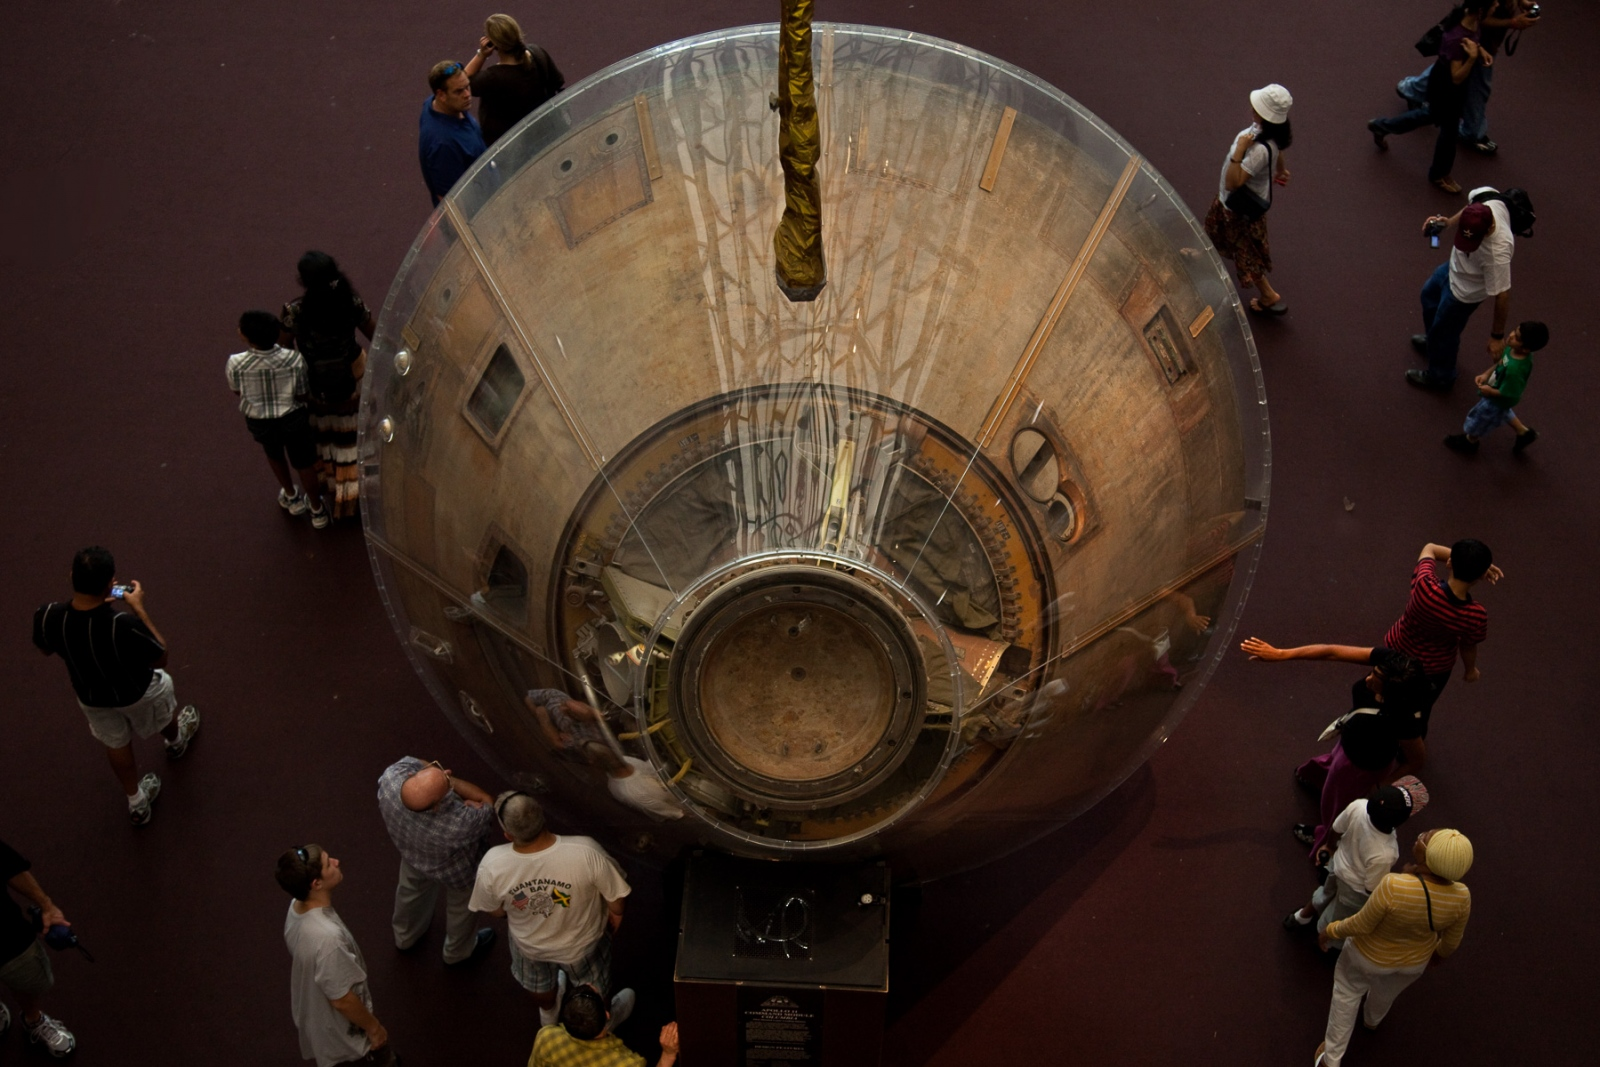 A tourist reaches out to touch the Apollo 11 command module on view at the museum during the 40th Anniversary of the Apollo 11 mission that landed the first humans on the moon.